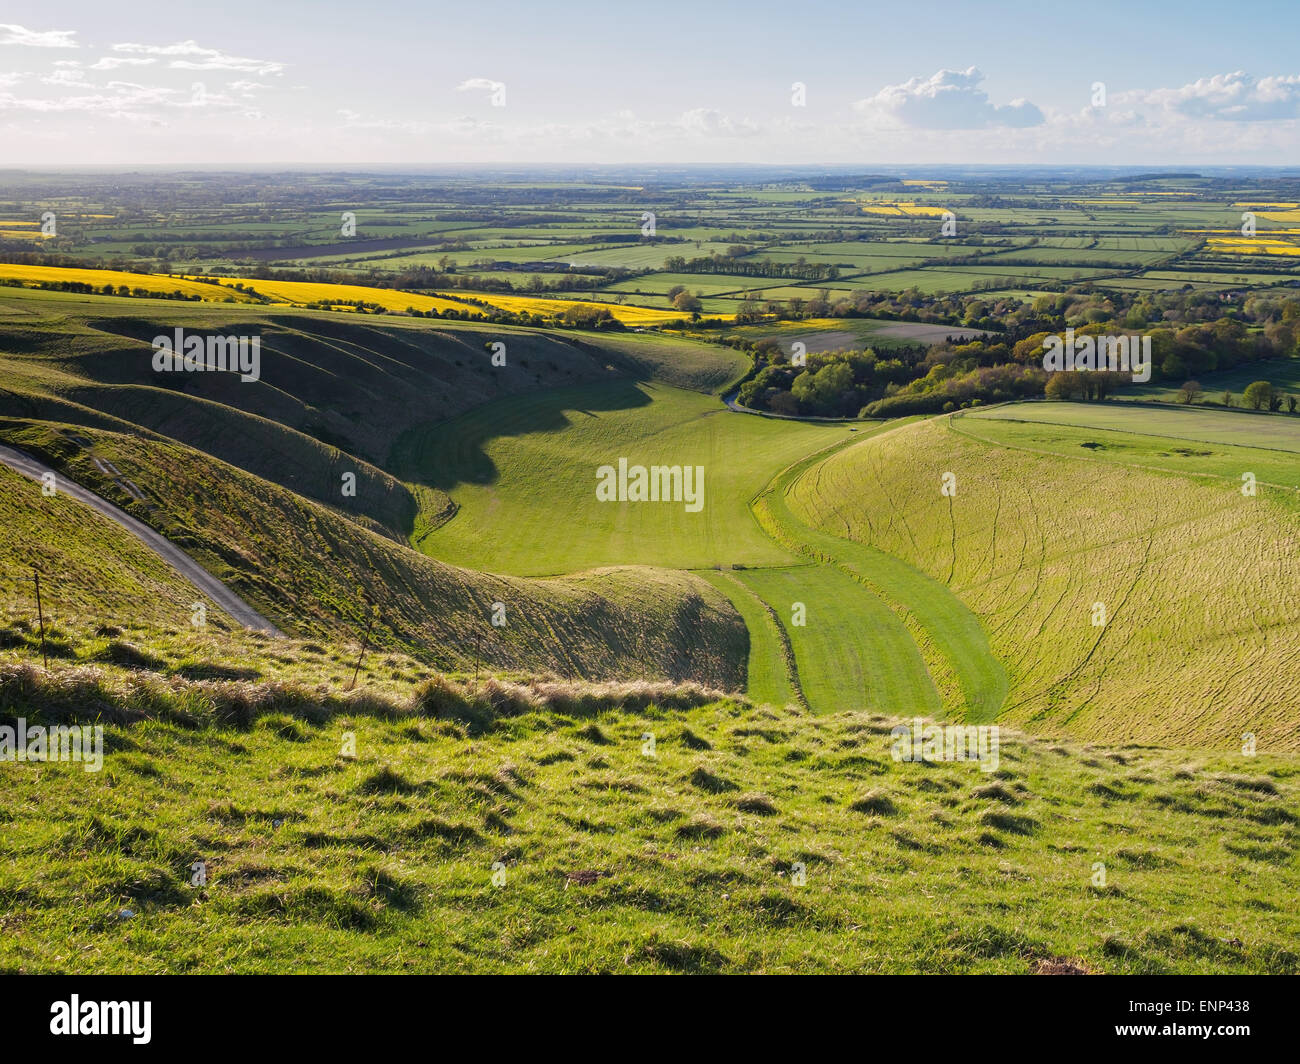 The Manger valley landform close to the Uffington White Horse, Oxfordshire. - Stock Image